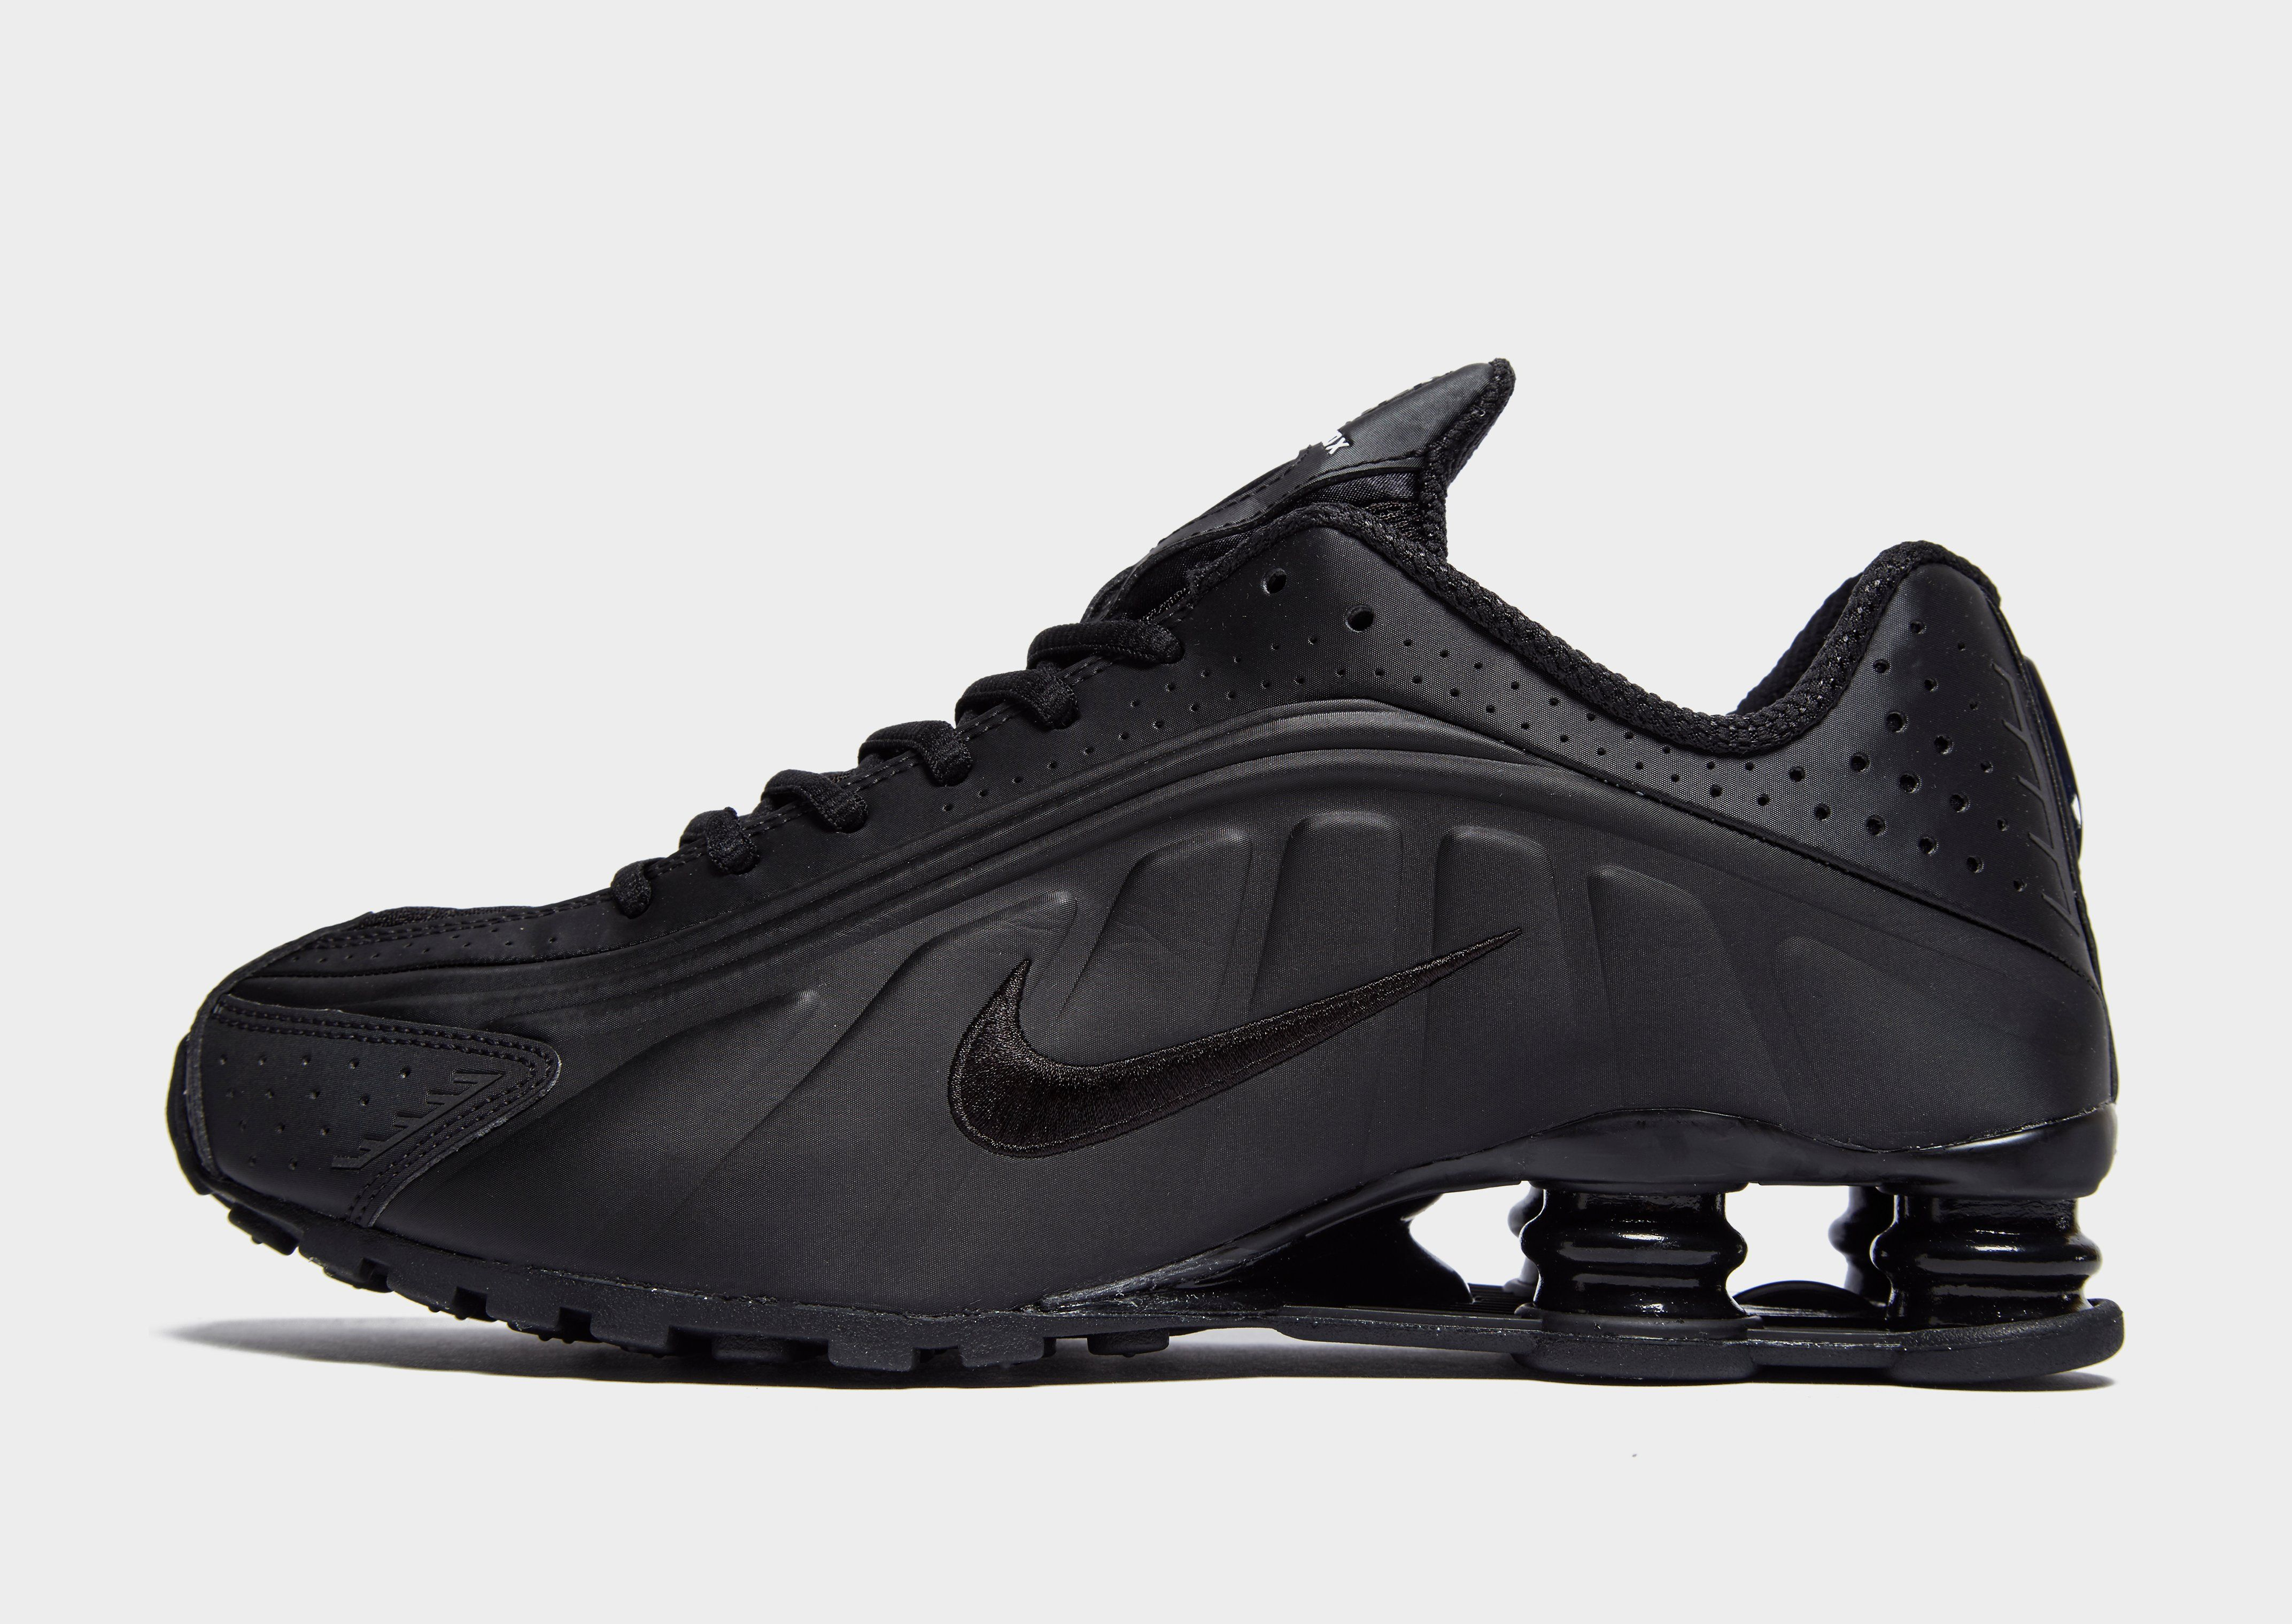 hot products various styles buy Nike Shox R4 Herren | JD Sports